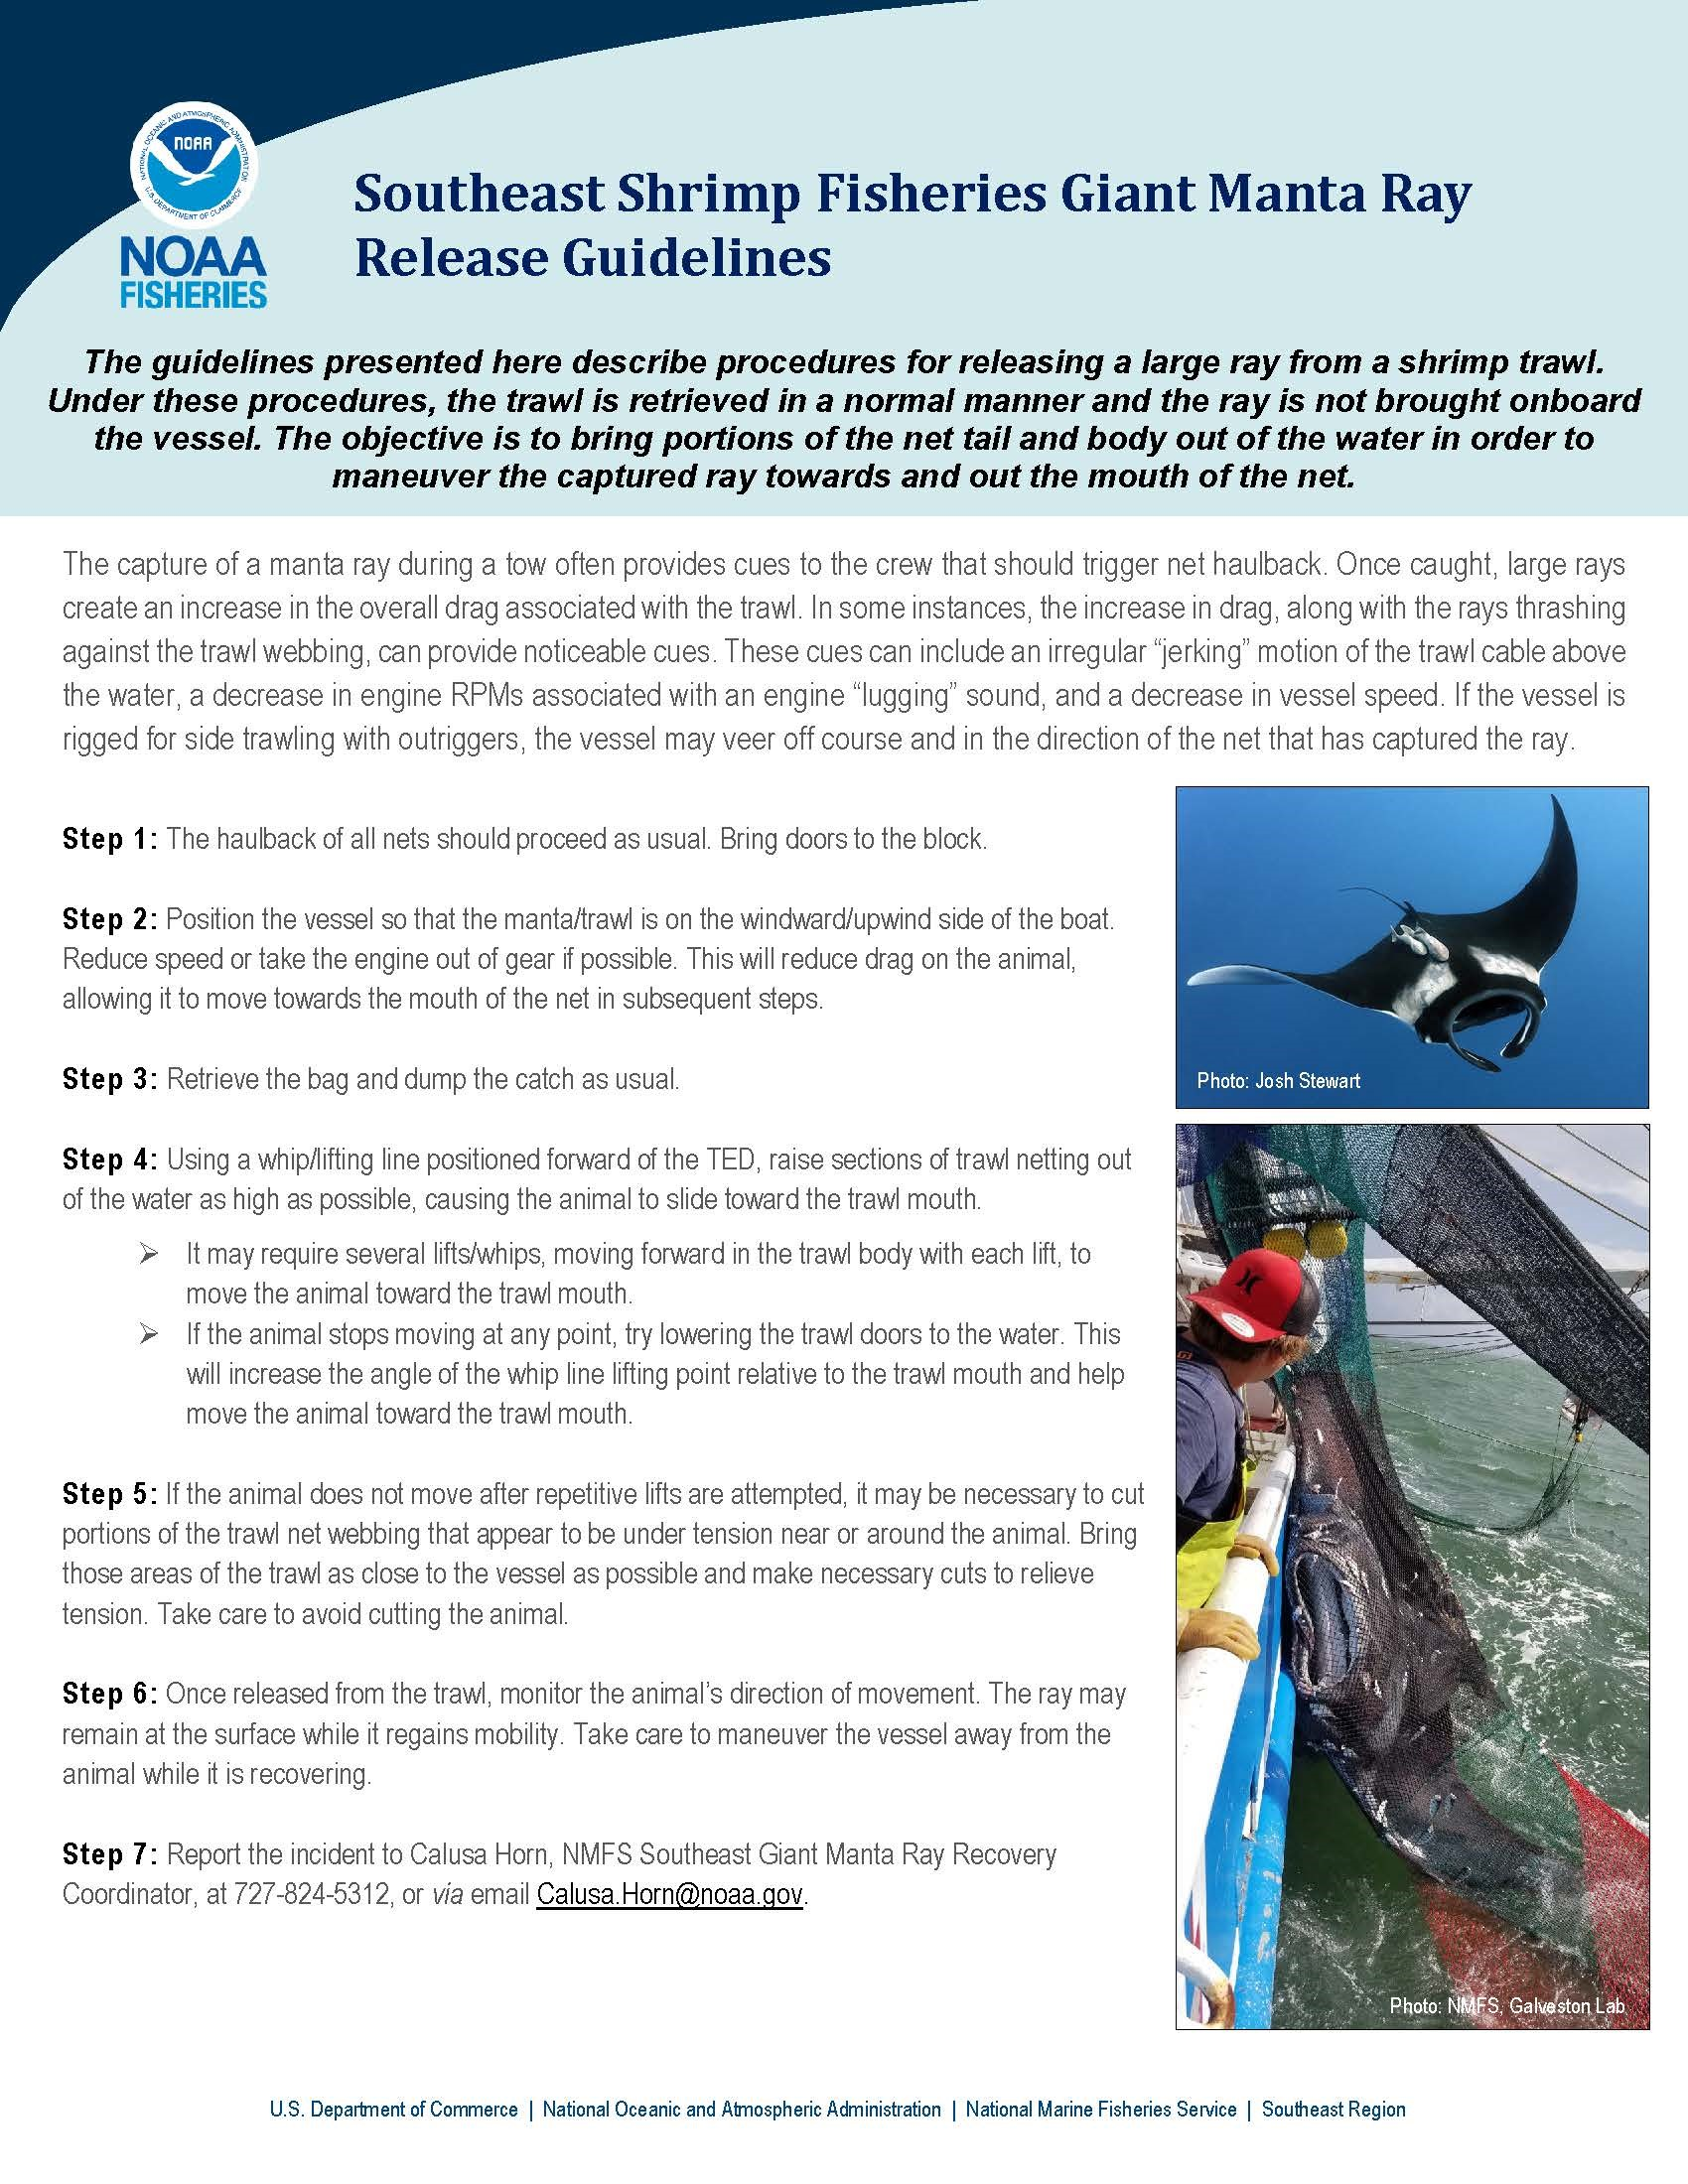 Infographic illustrating giant mantra ray release guidelines